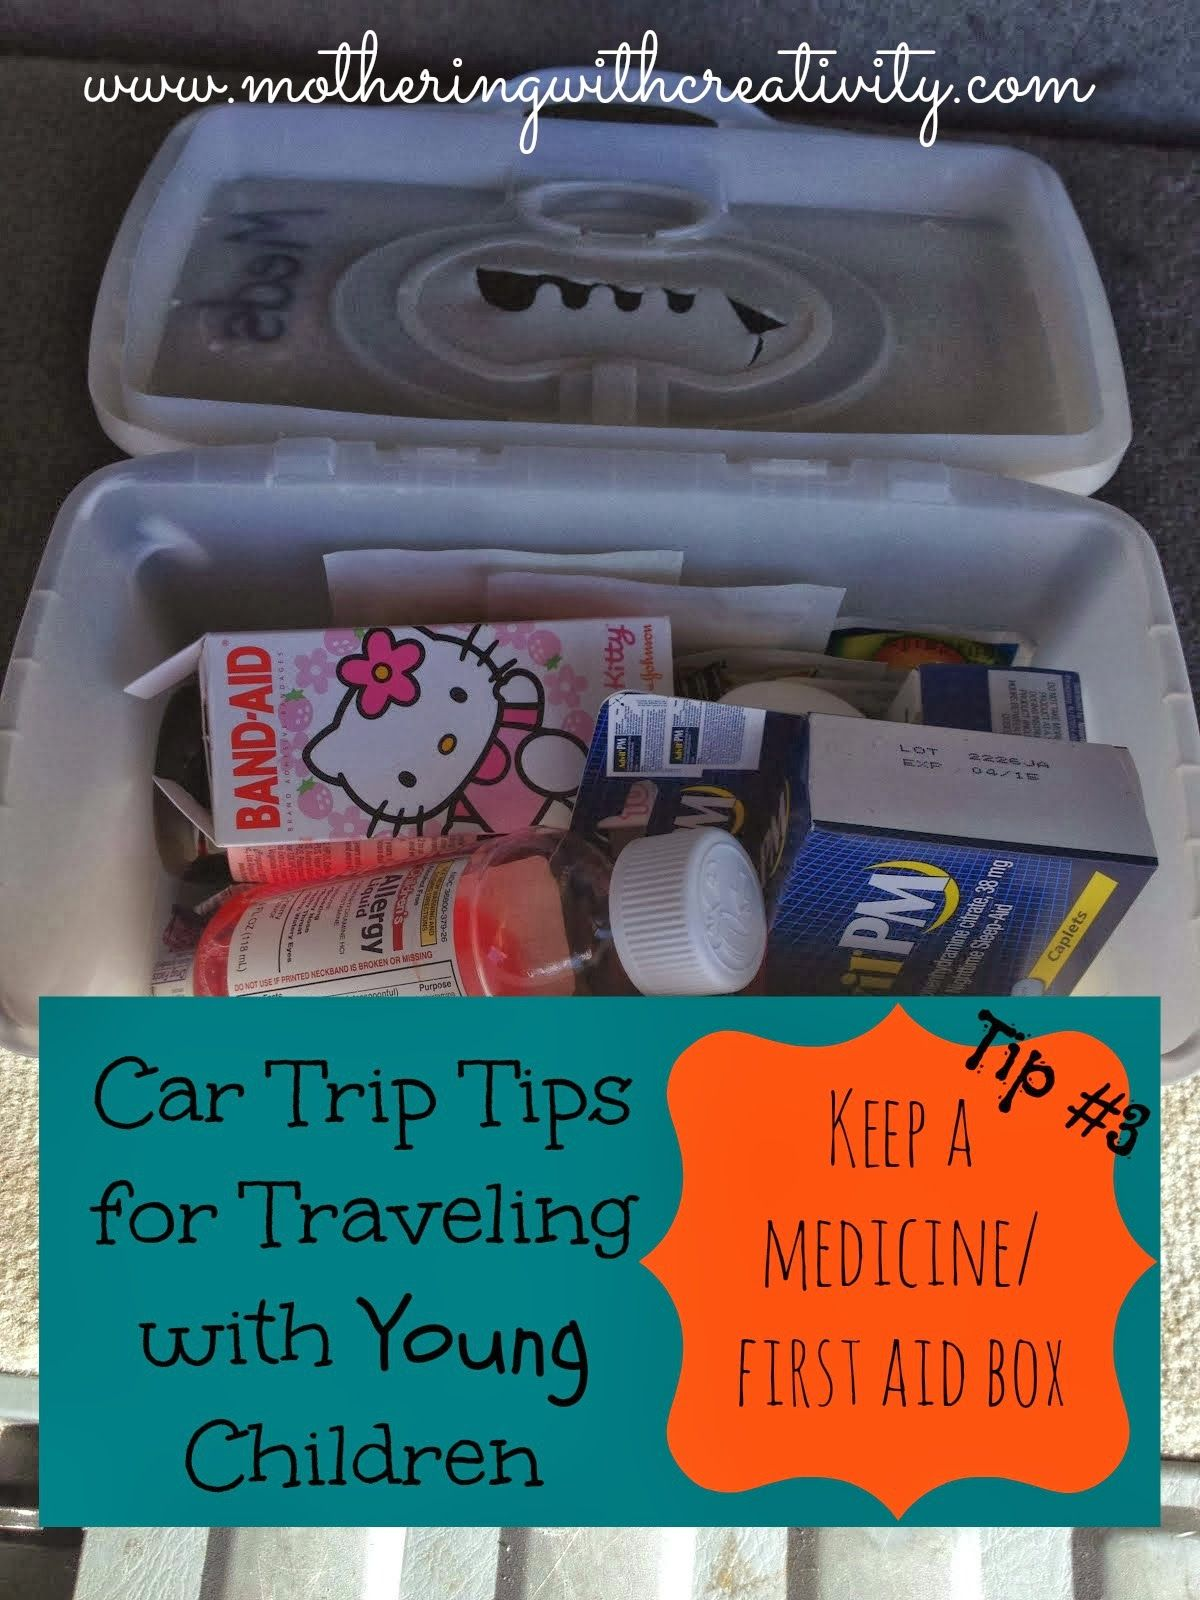 Mothering with creativity car trip tips for traveling with young